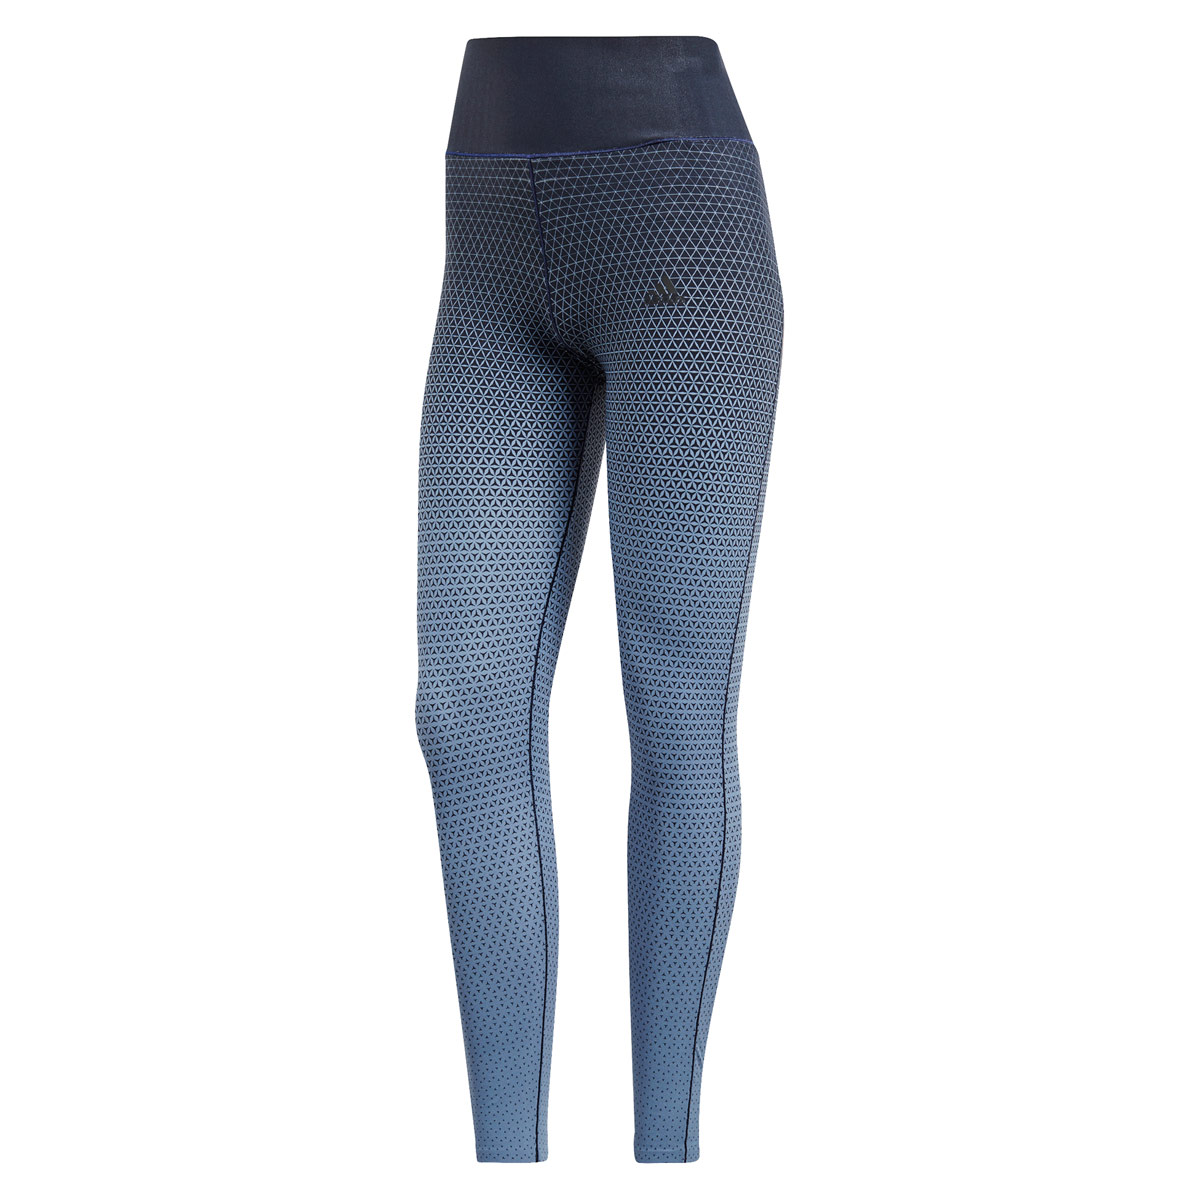 93ef6cc4e283a adidas Ultimate Miracle Sculpt Tight - Fitness trousers for Women - Blue    21RUN